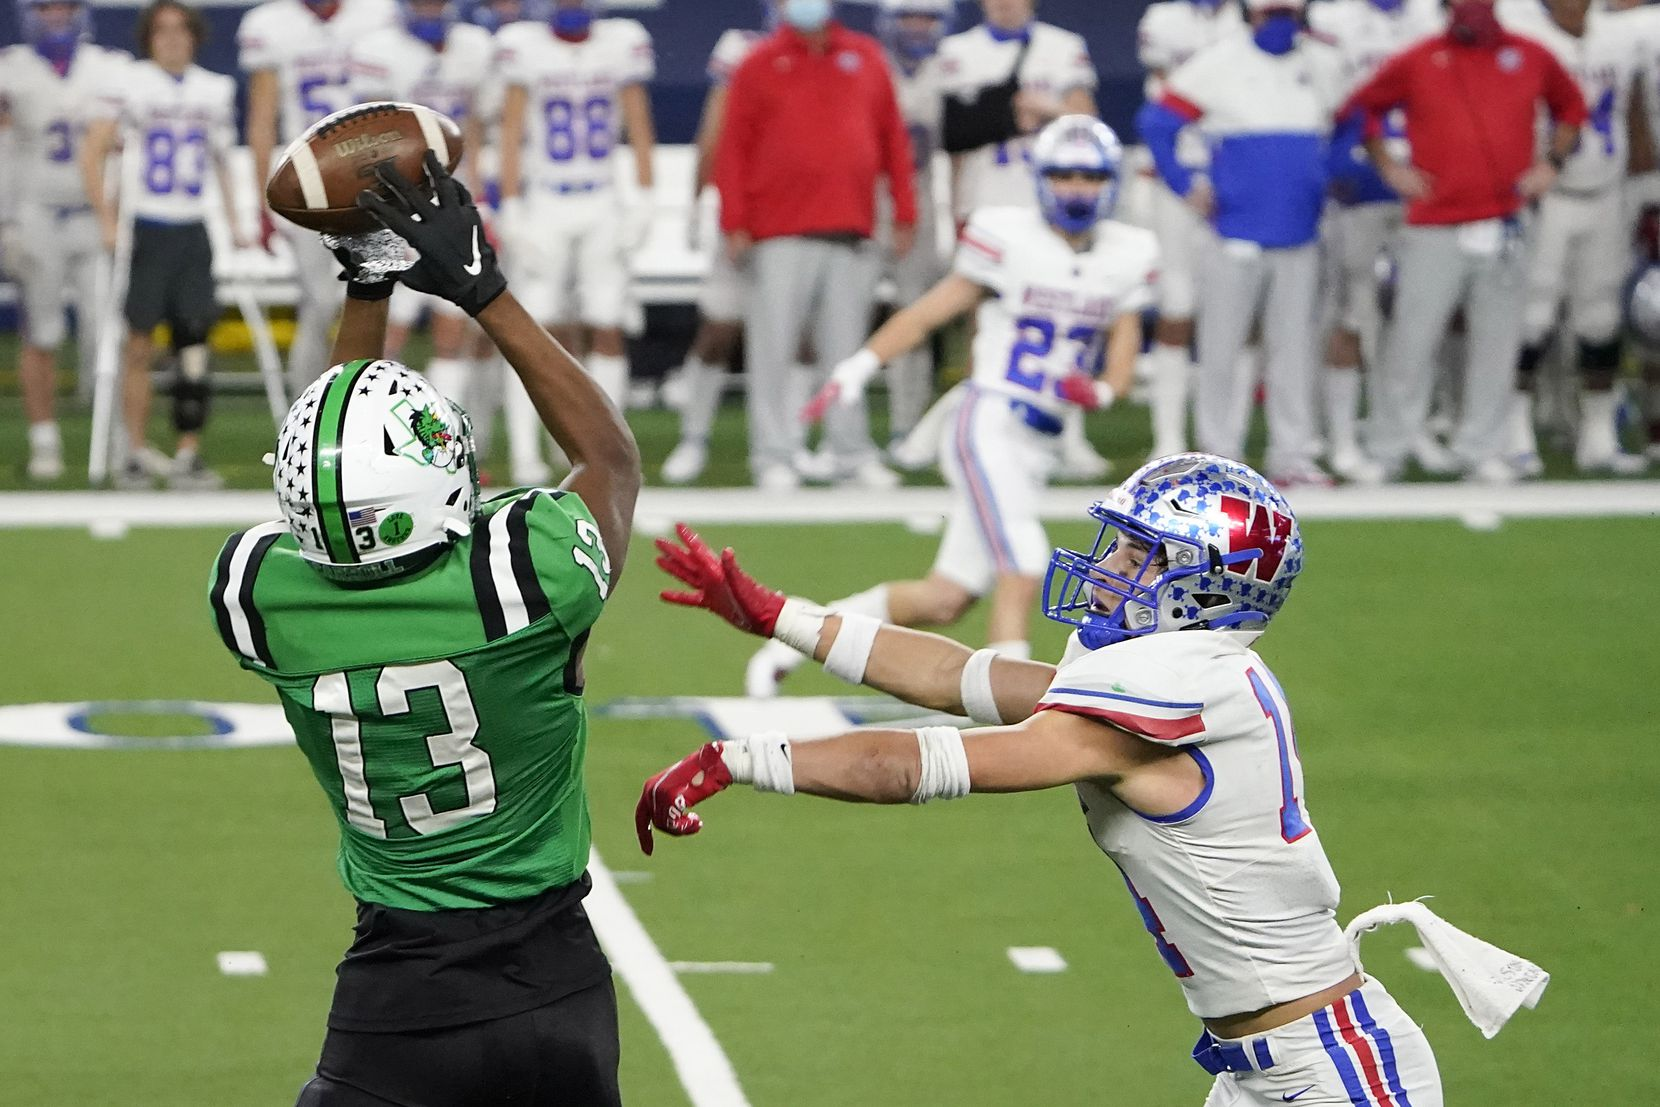 Southlake Carroll tight end RJ Maryland (13) catches a pass on a fourth down play over Austin Westlake defensive back Michael Taaffe (14) during the fourth quarter of the Class 6A Division I state football championship game at AT&T Stadium on Saturday, Jan. 16, 2021, in Arlington, Texas. Westlake won the game 52-34.